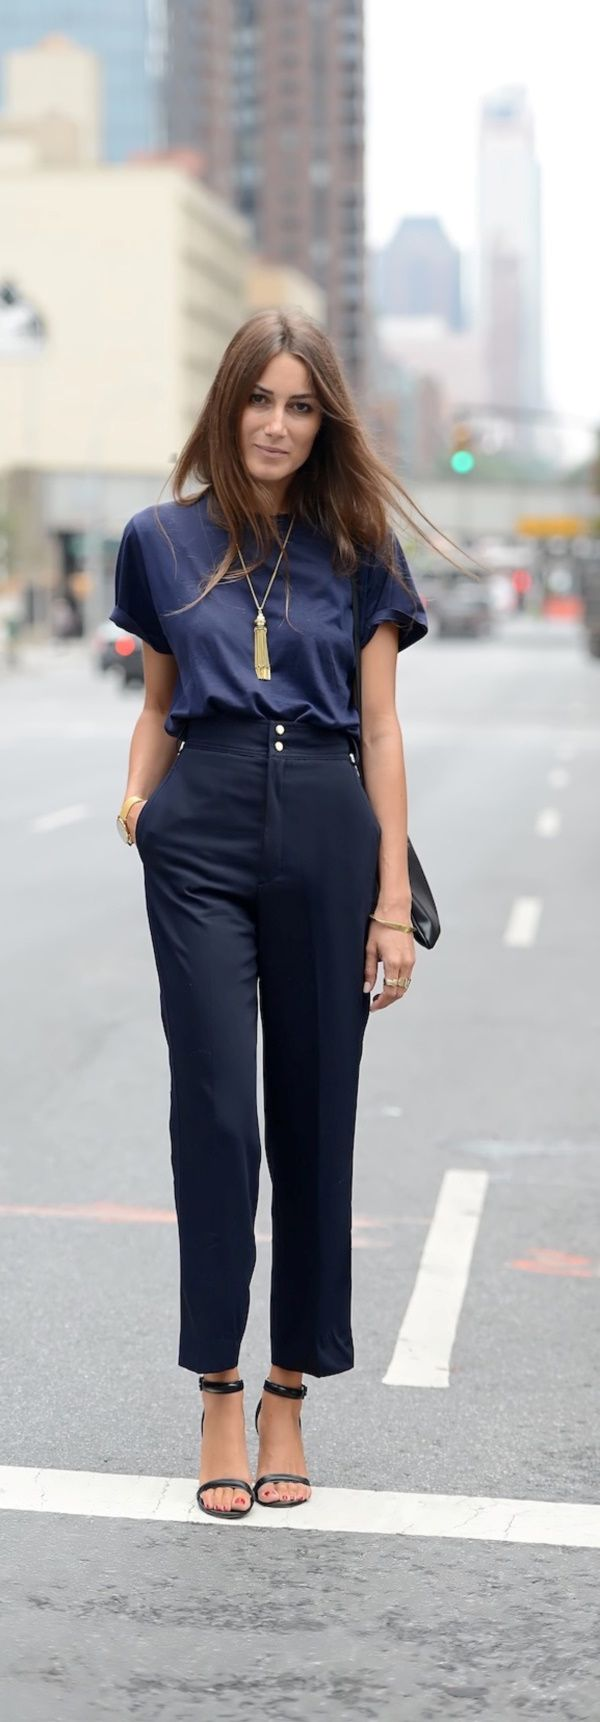 677bcc860a96 Great Women Work Clothing For Summer 2019 ⋆ FashionTrendWalk.com